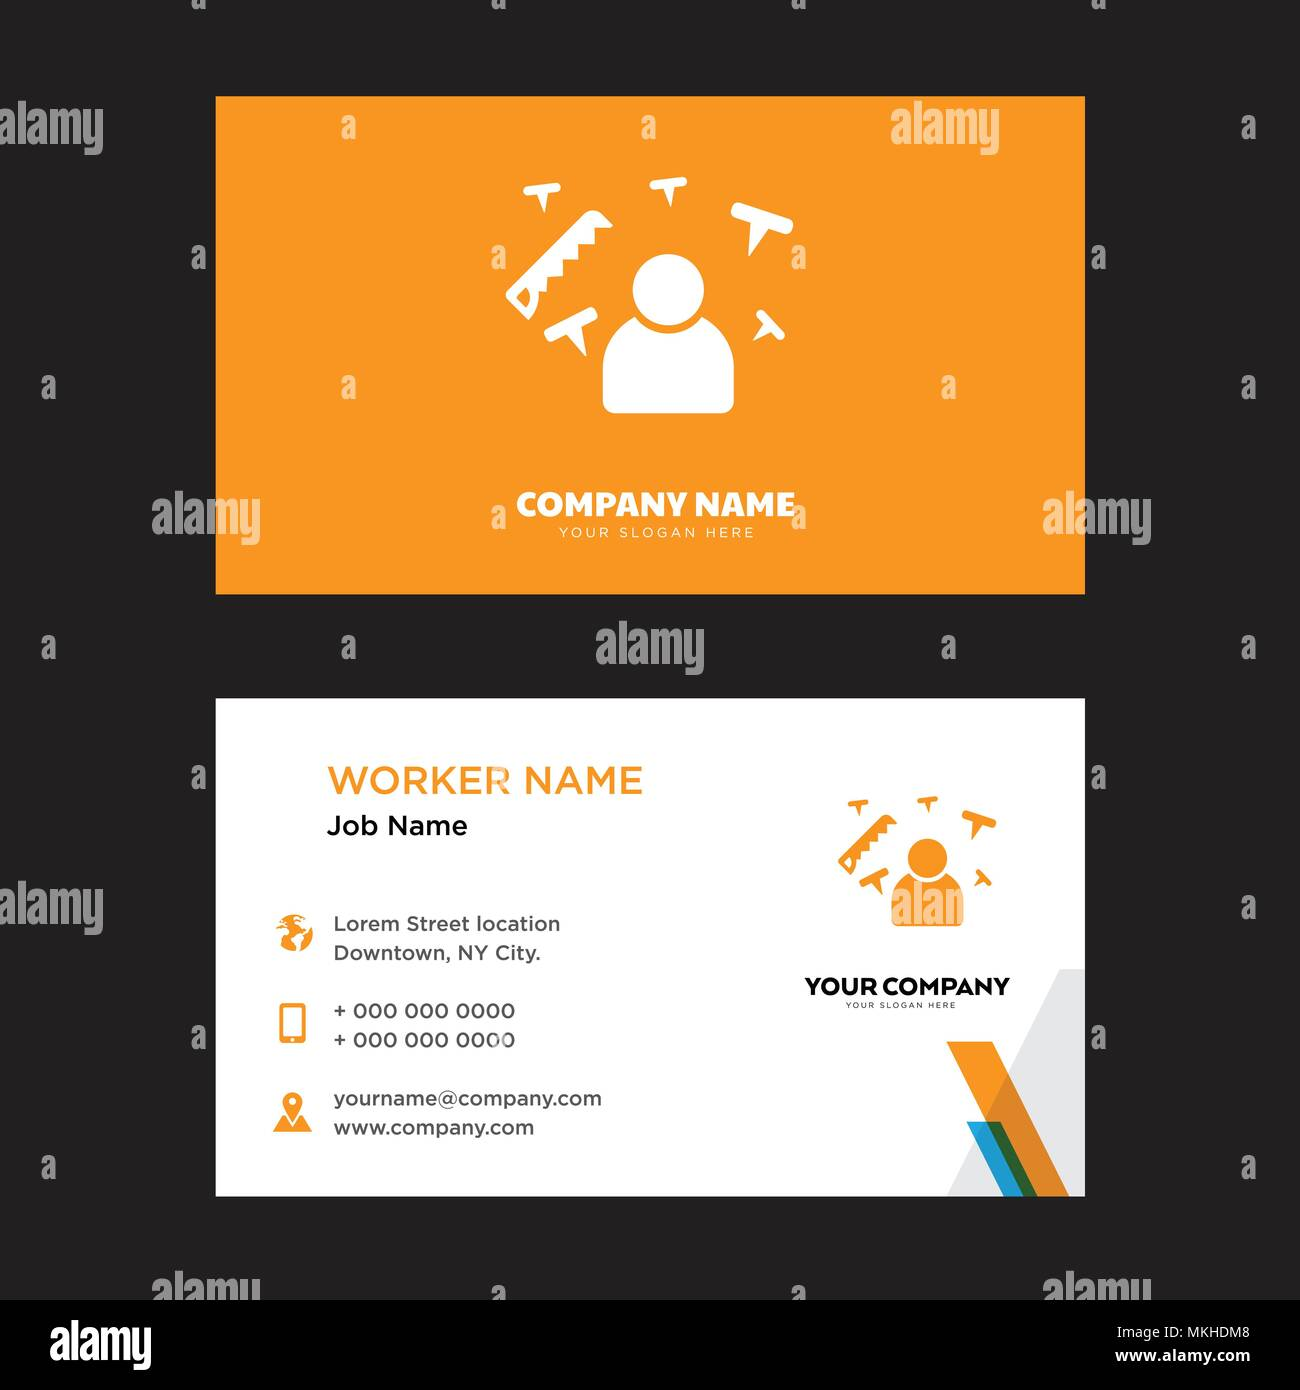 Carpenter business card design template visiting for your company carpenter business card design template visiting for your company modern horizontal identity card vector accmission Gallery